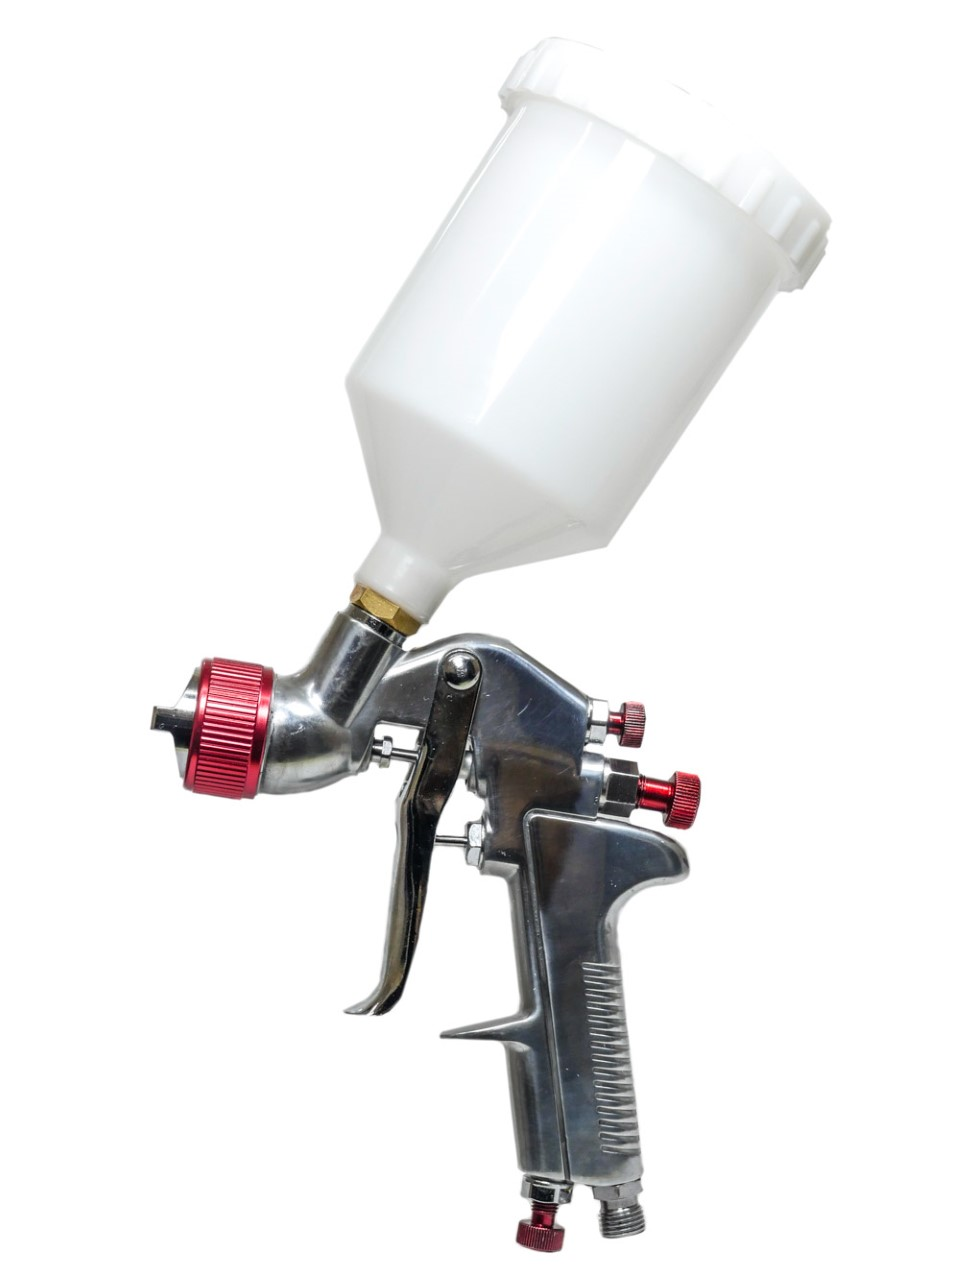 Starchem Gravity Feed Spray Gun 1.4mm or 1.8mm